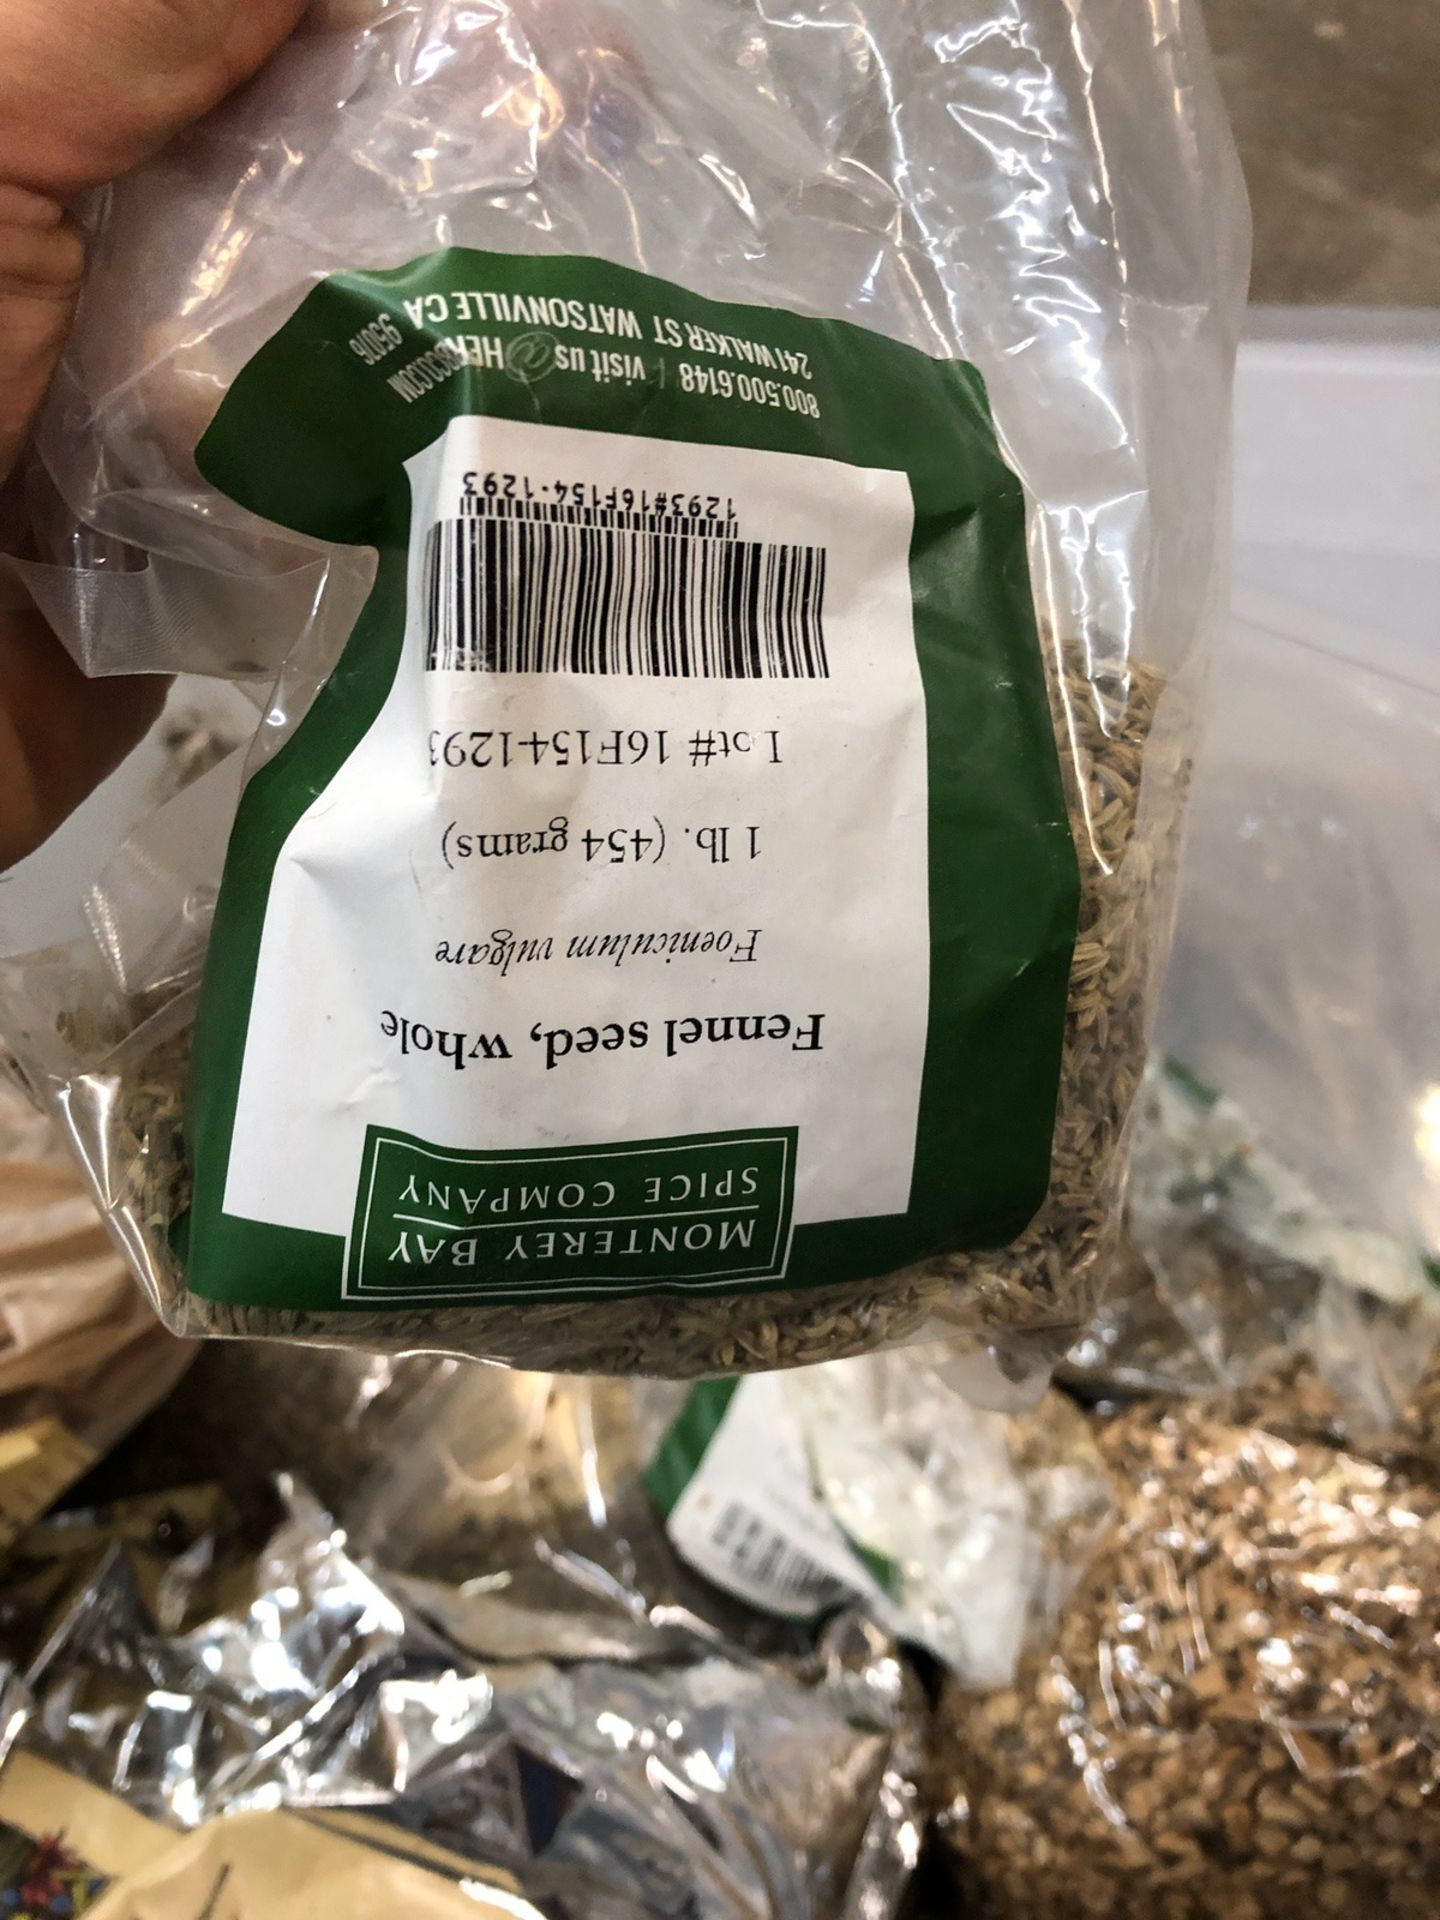 Lot 112 - Lot of Herbs and Botanicals: Speedwell Herb, Wormwood, Lemon Balm, Calmus Root, | Rig Fee: $20 or HC